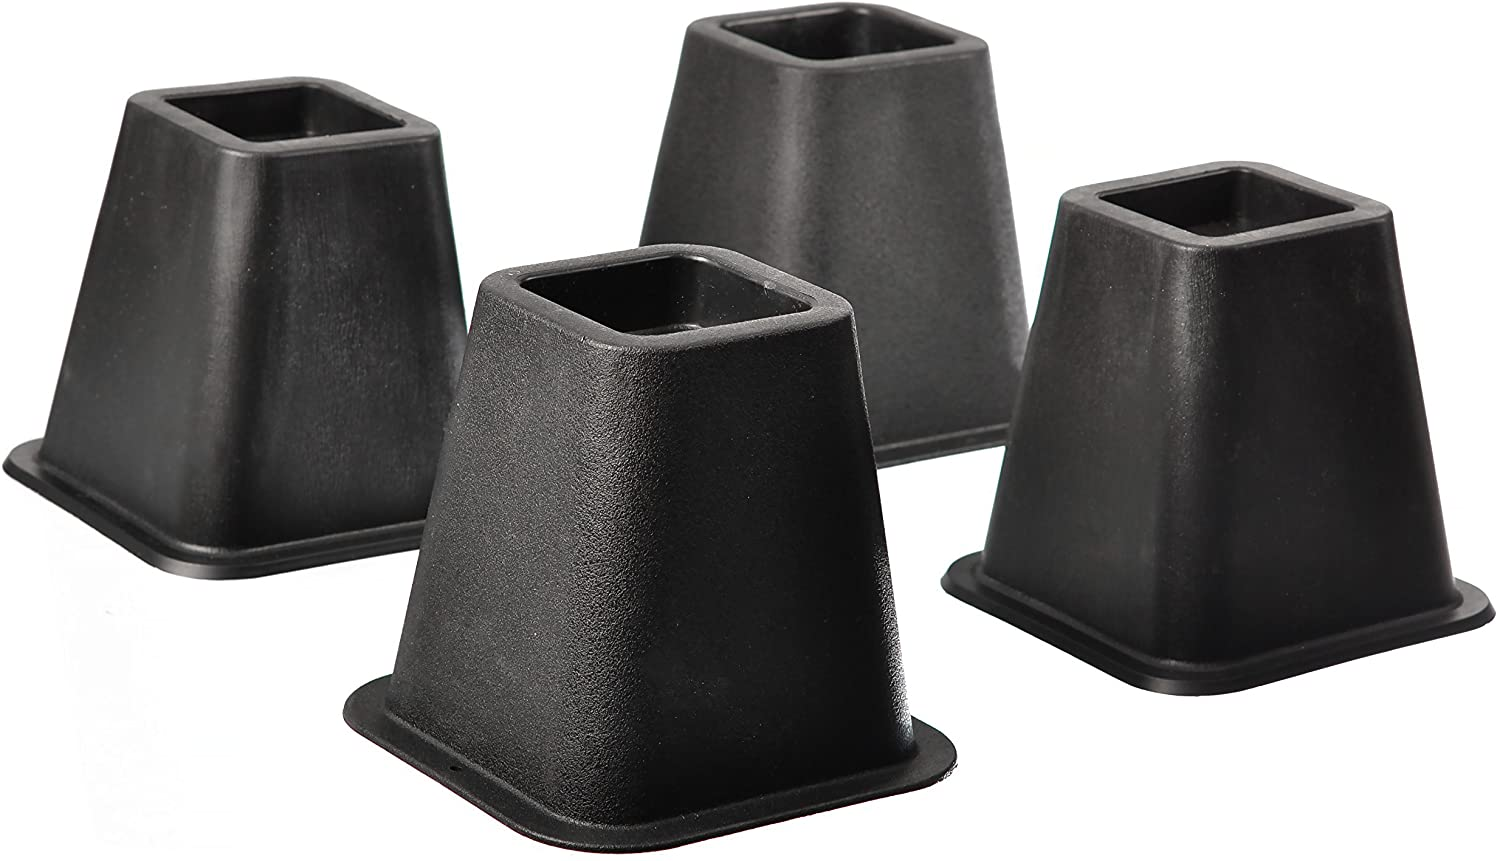 Home-it 5 to 6-inch SUPER QUALITY Black bed risers, helps you storage under the bed 4-pack (Black): Home & Kitchen